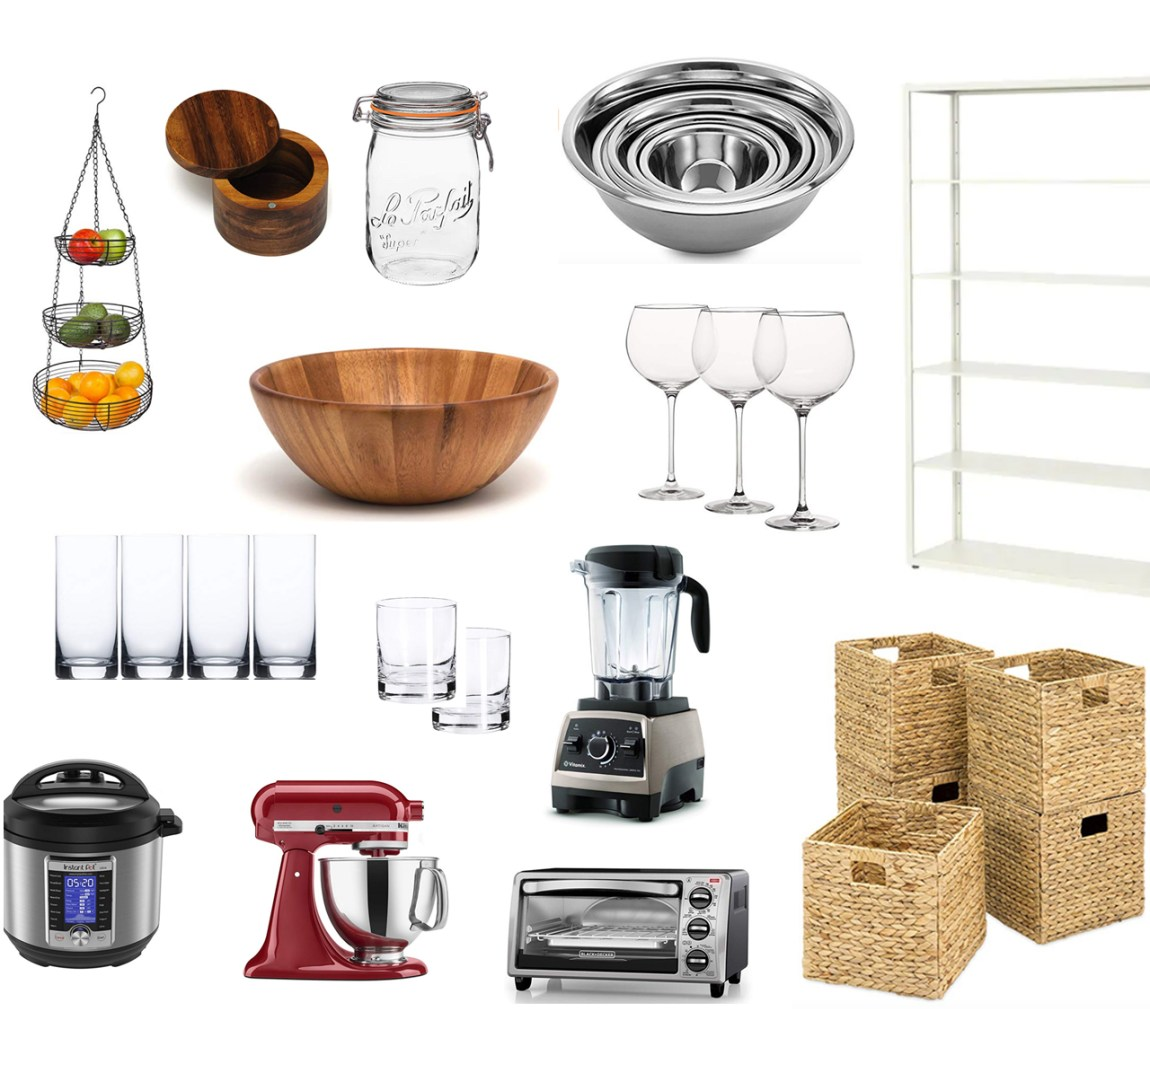 Minimalist Kitchen Makeover Products and Accessories